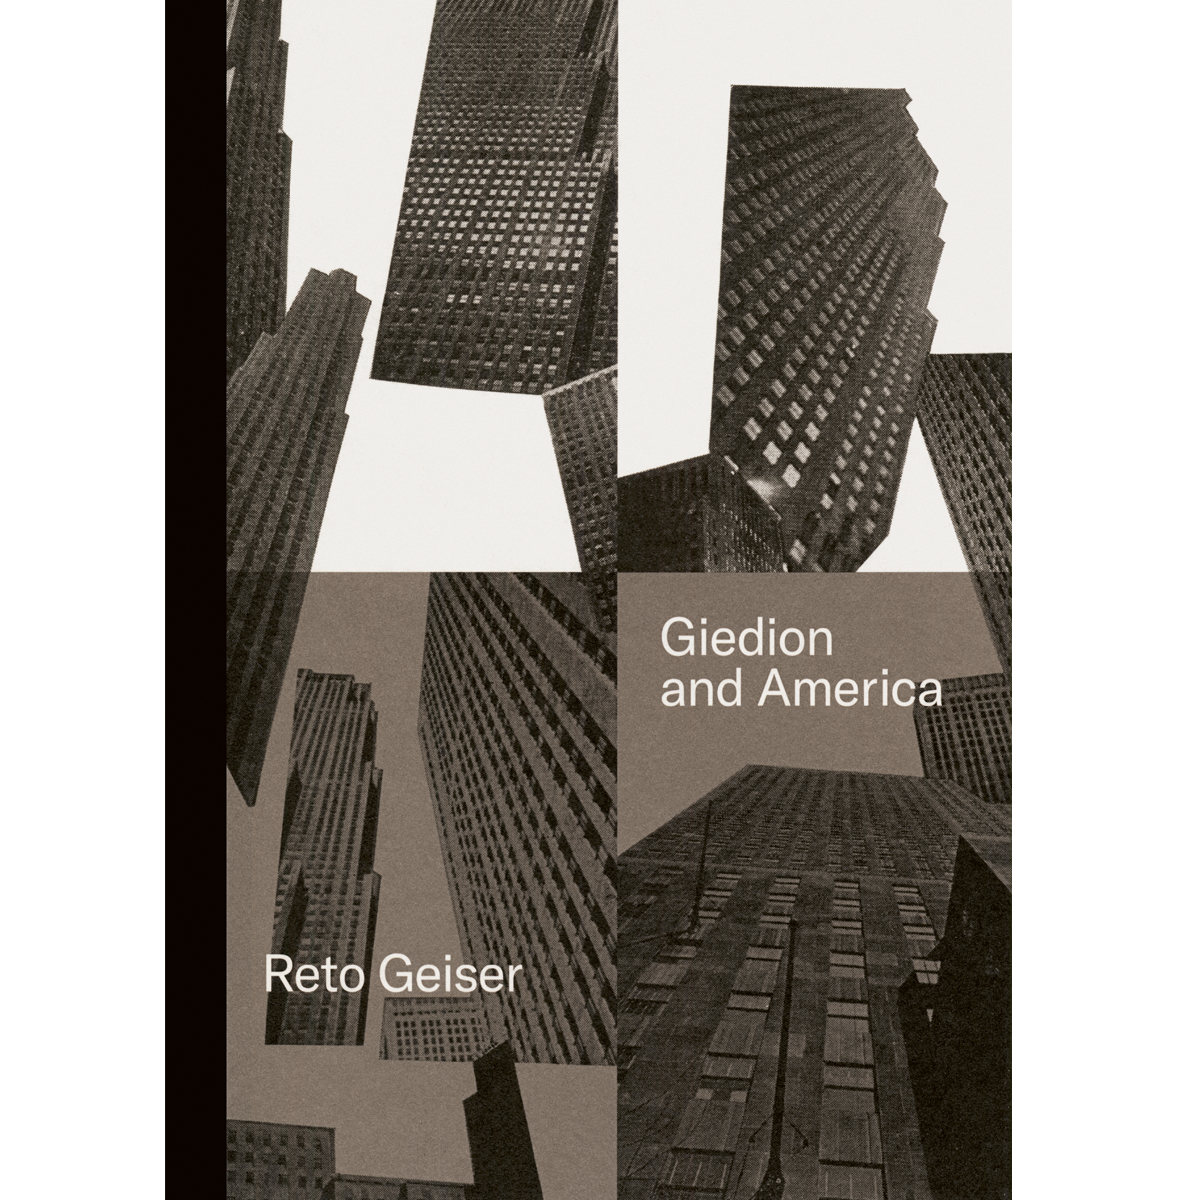 Giedion and America